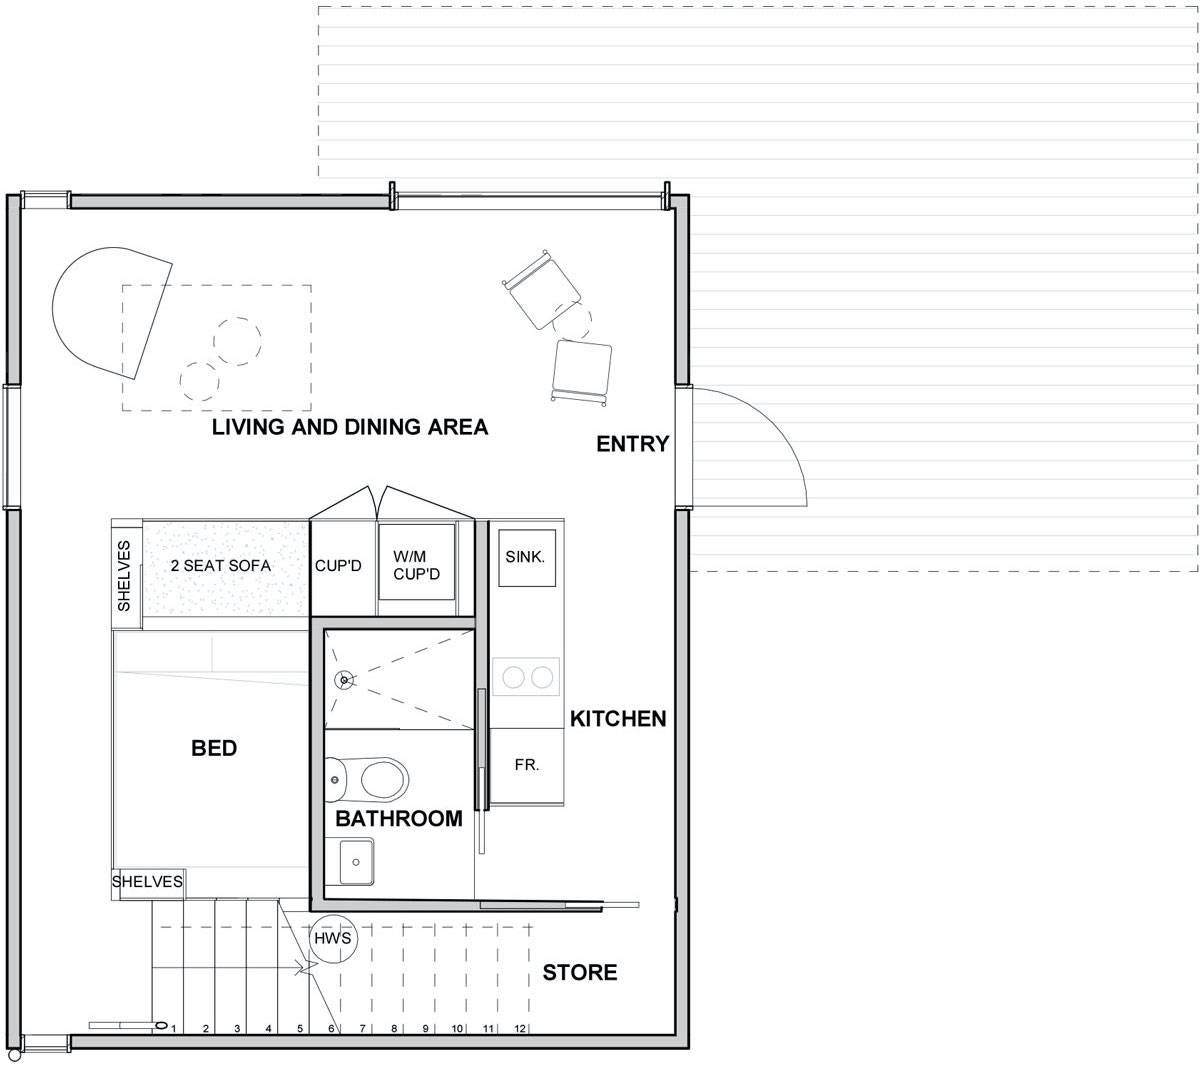 Level G Floor Plan